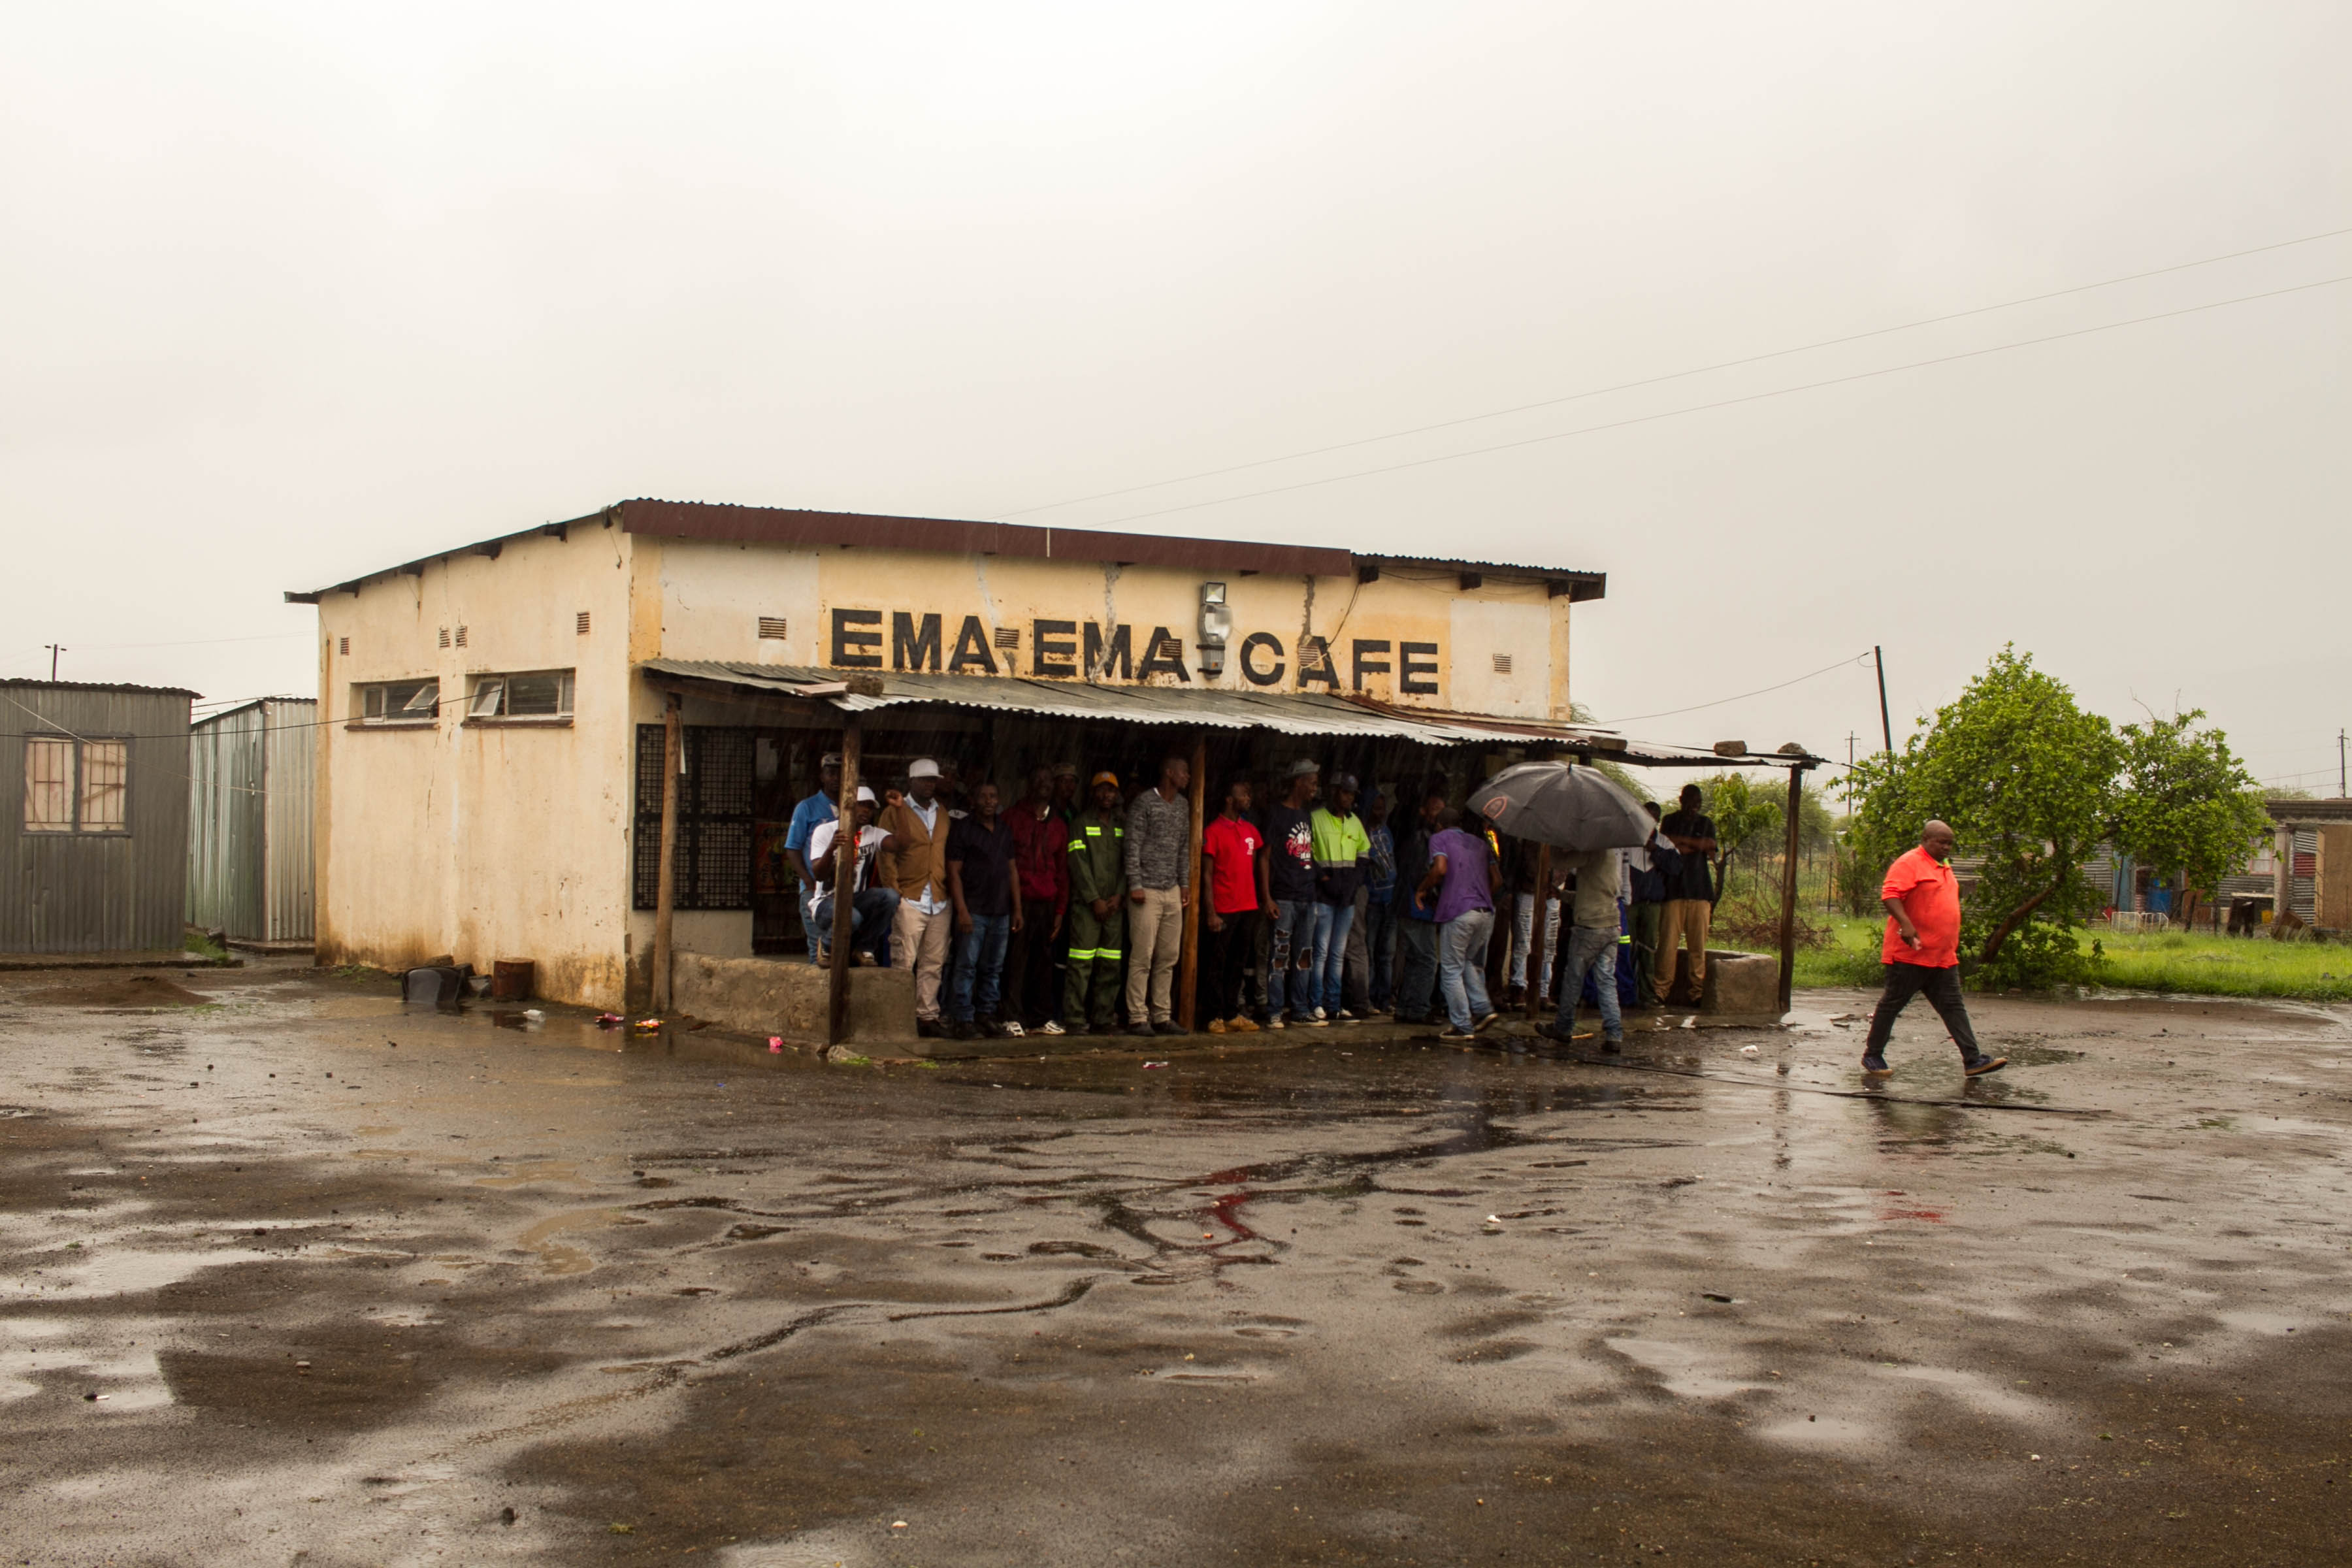 4 December 2019: When security guards at the Horizon Chrome Mine began shooting rubber bullets at protesting mineworkers, they sought refuge at the nearby Ema Ema Cafe.